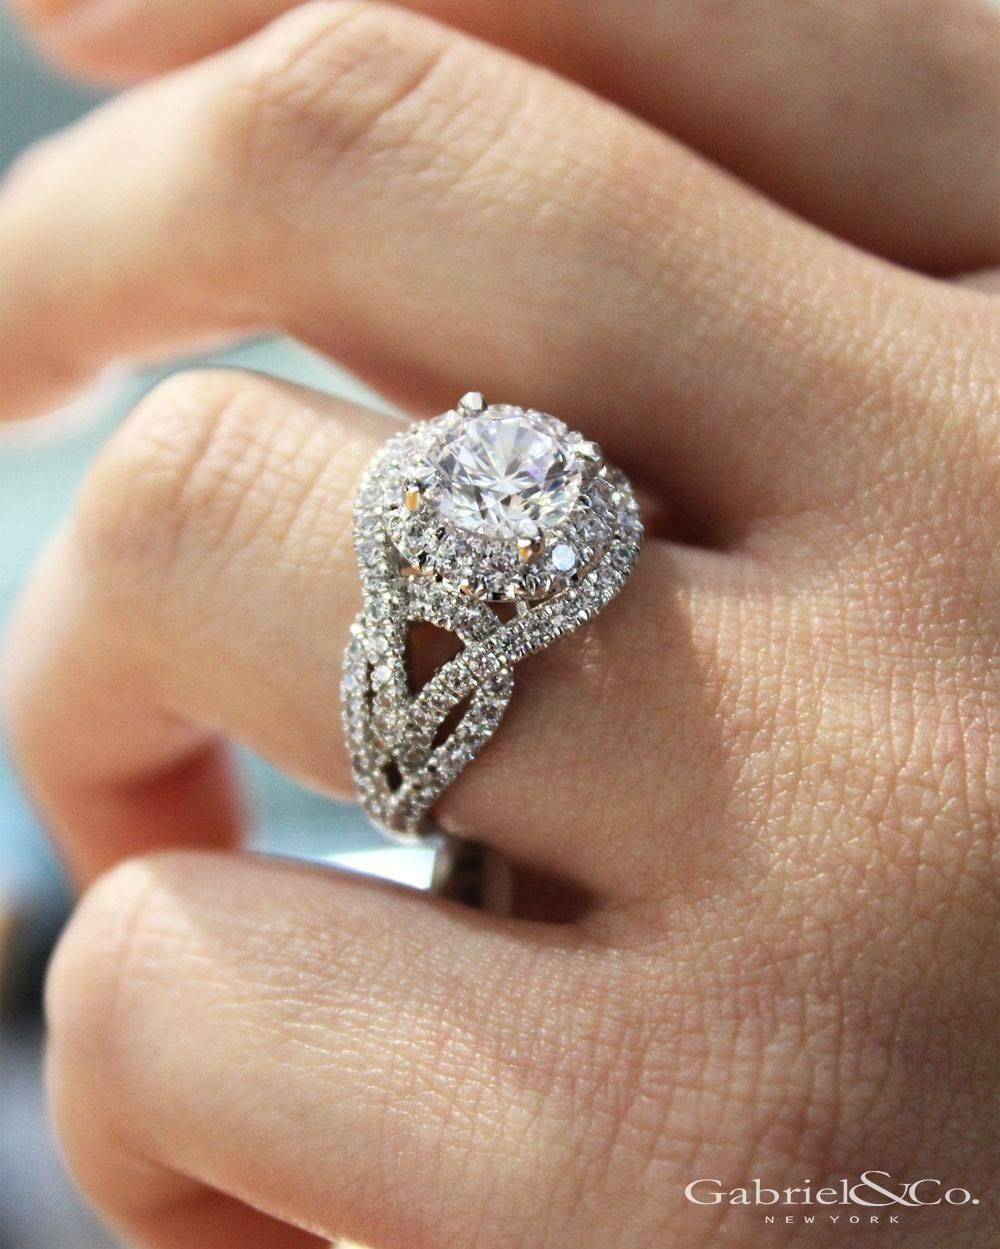 Pin by Amanda Wiles on Rings engagement ring